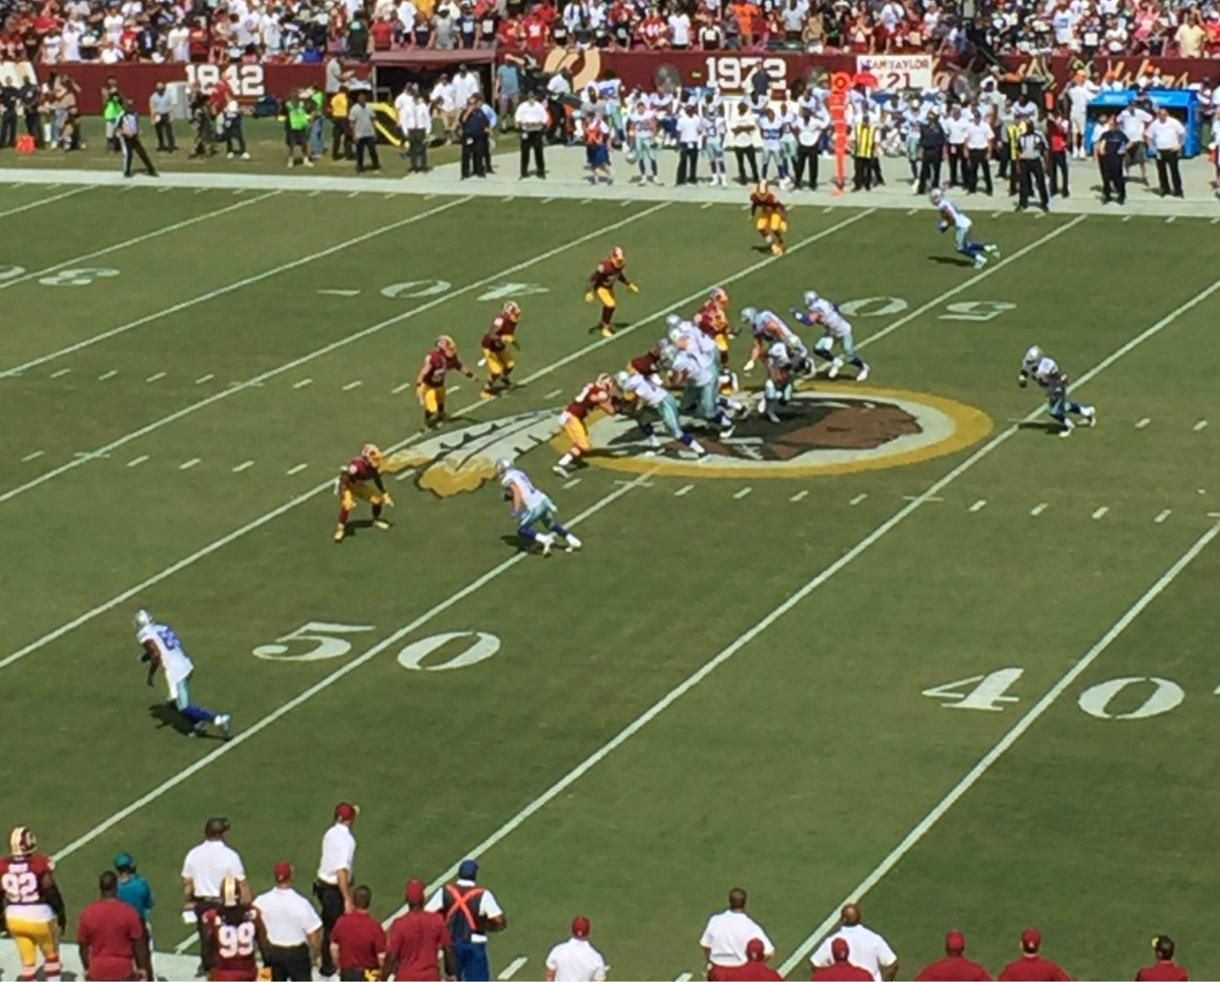 EXCLUSIVE OFFER! $149 for CLUB LEVEL SEATS to Washington Redskins vs. Dallas Cowboys NFL Football Game!